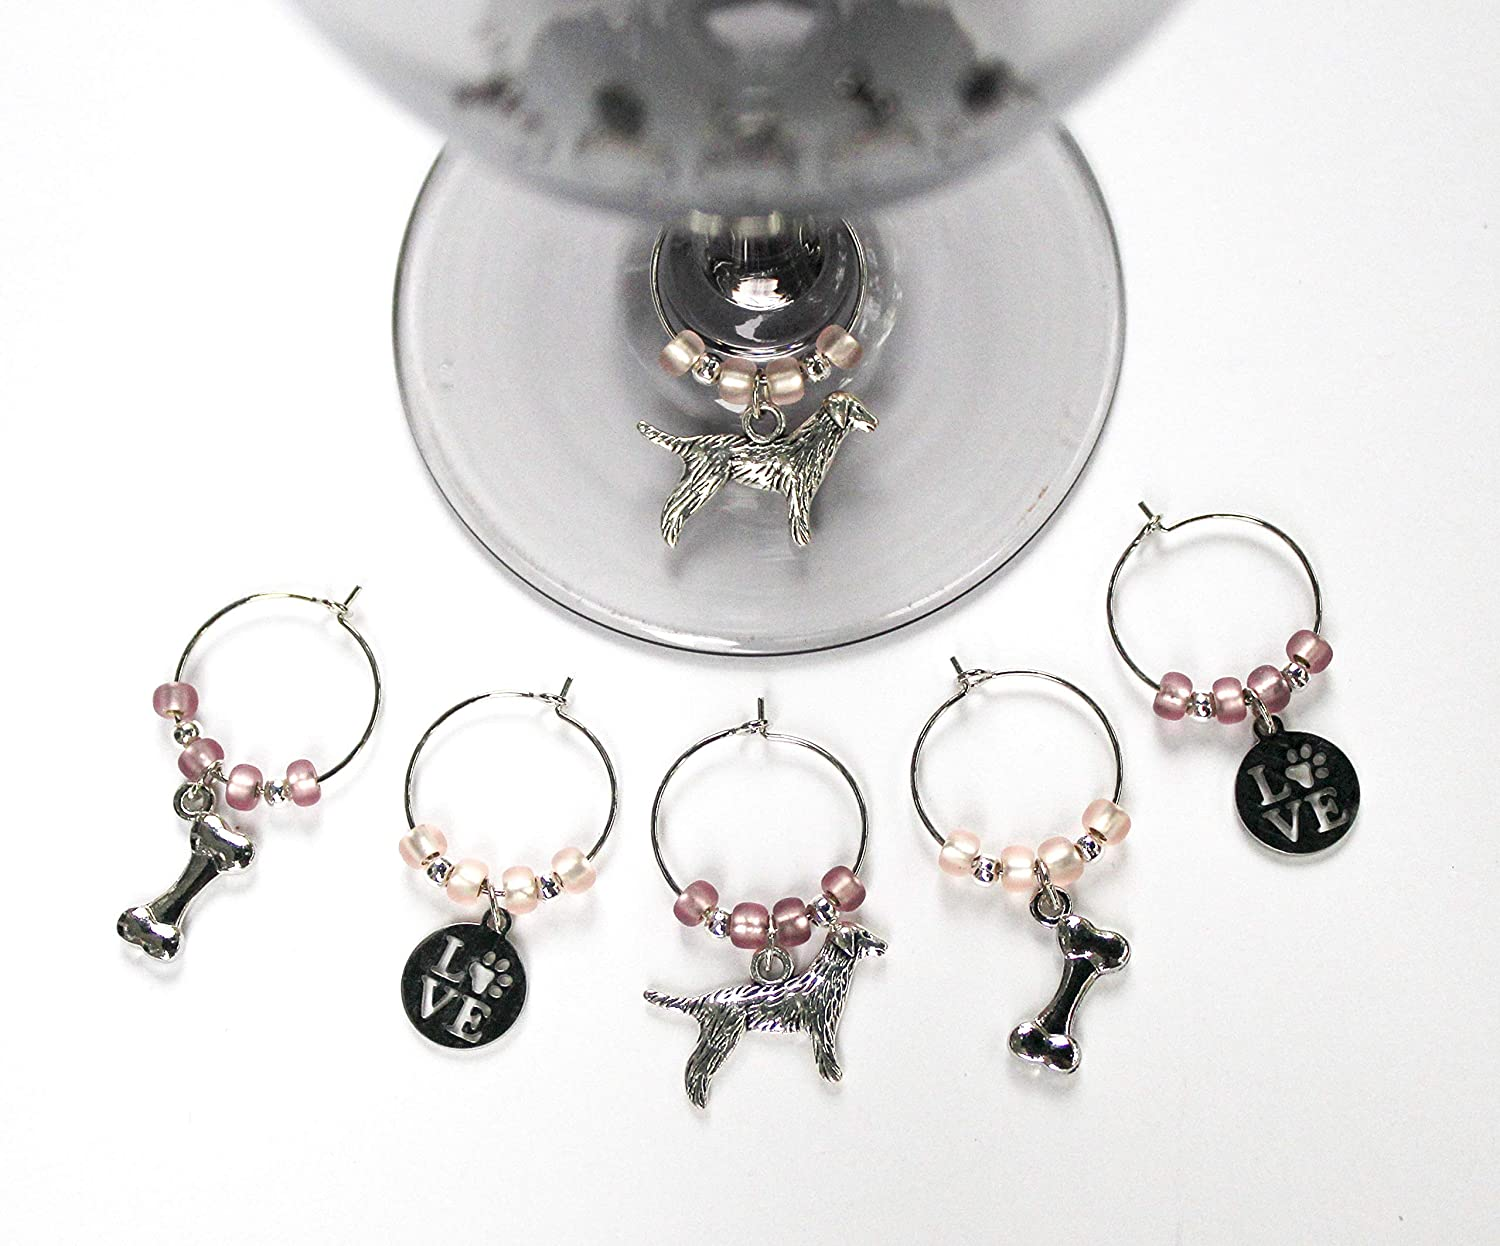 Branded goods Golden Retriever-Dog-Wine At the price Glass of 6-GOLDENTHM001-6 Charms-Set